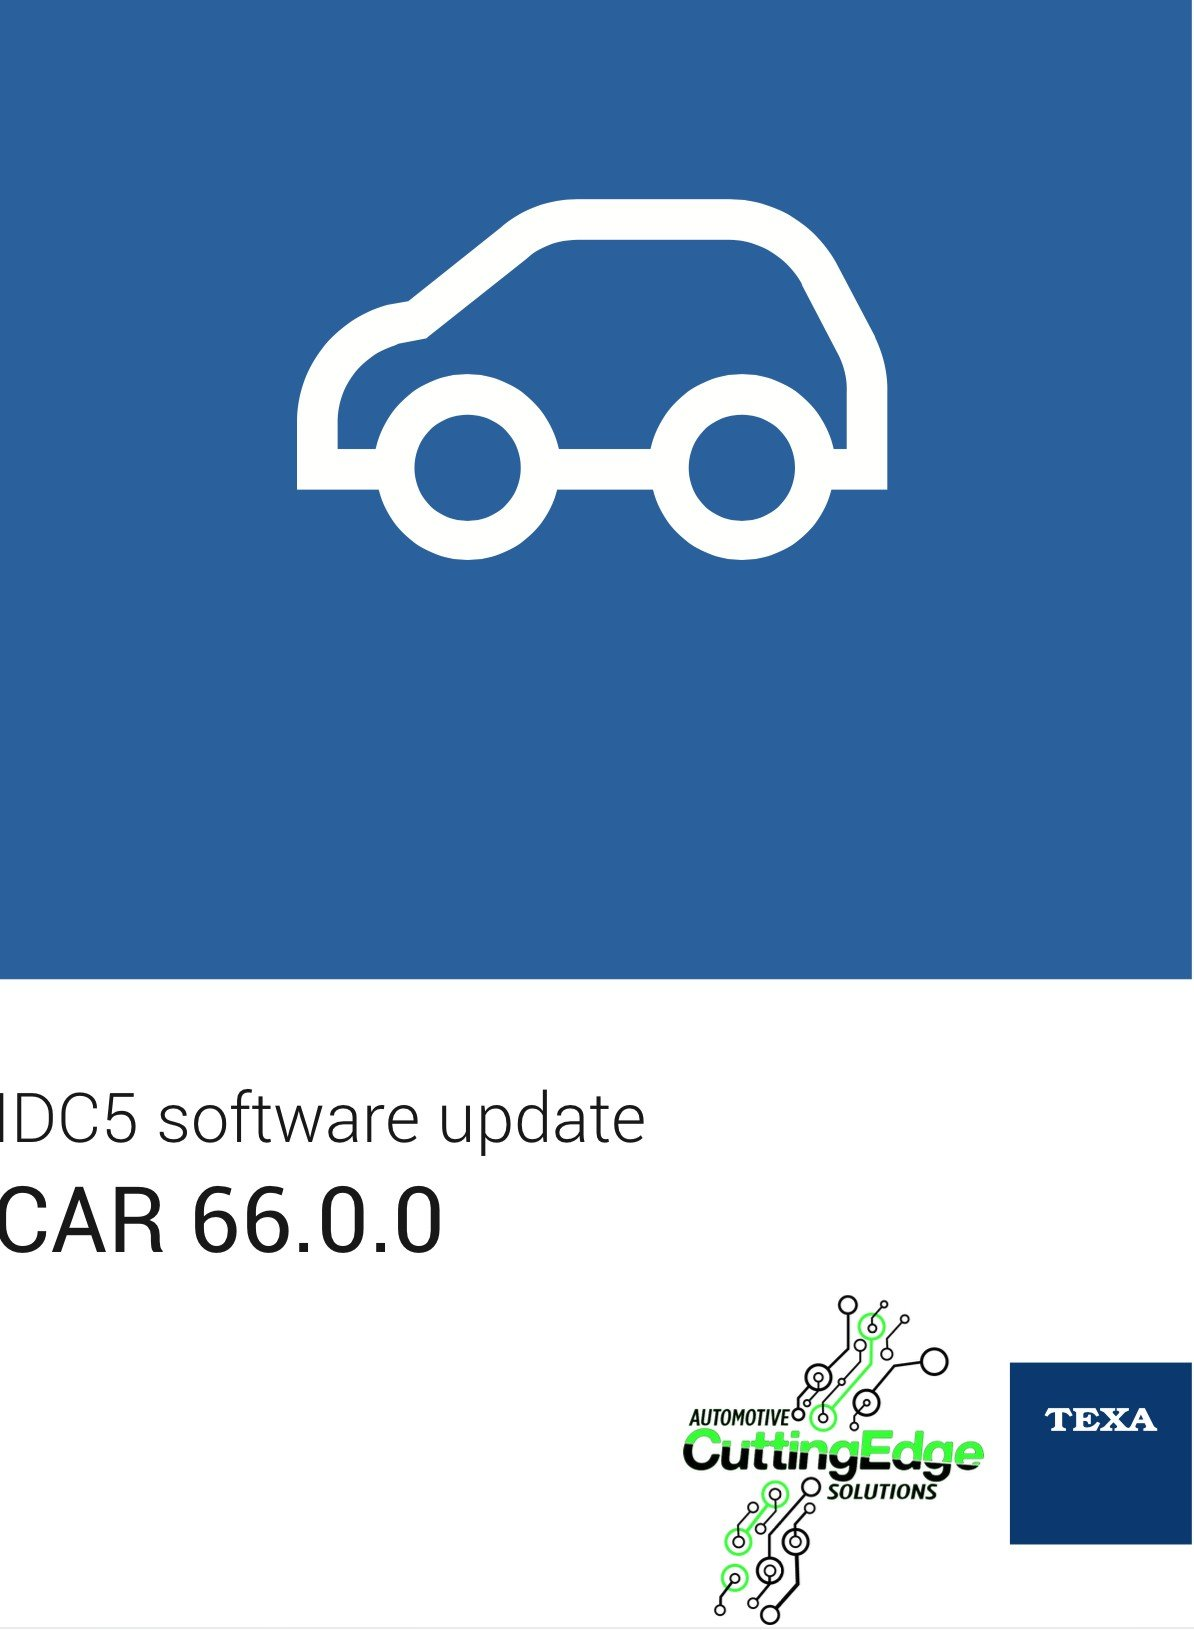 Diagnostic Update CAR IDC5 - 66.0.0